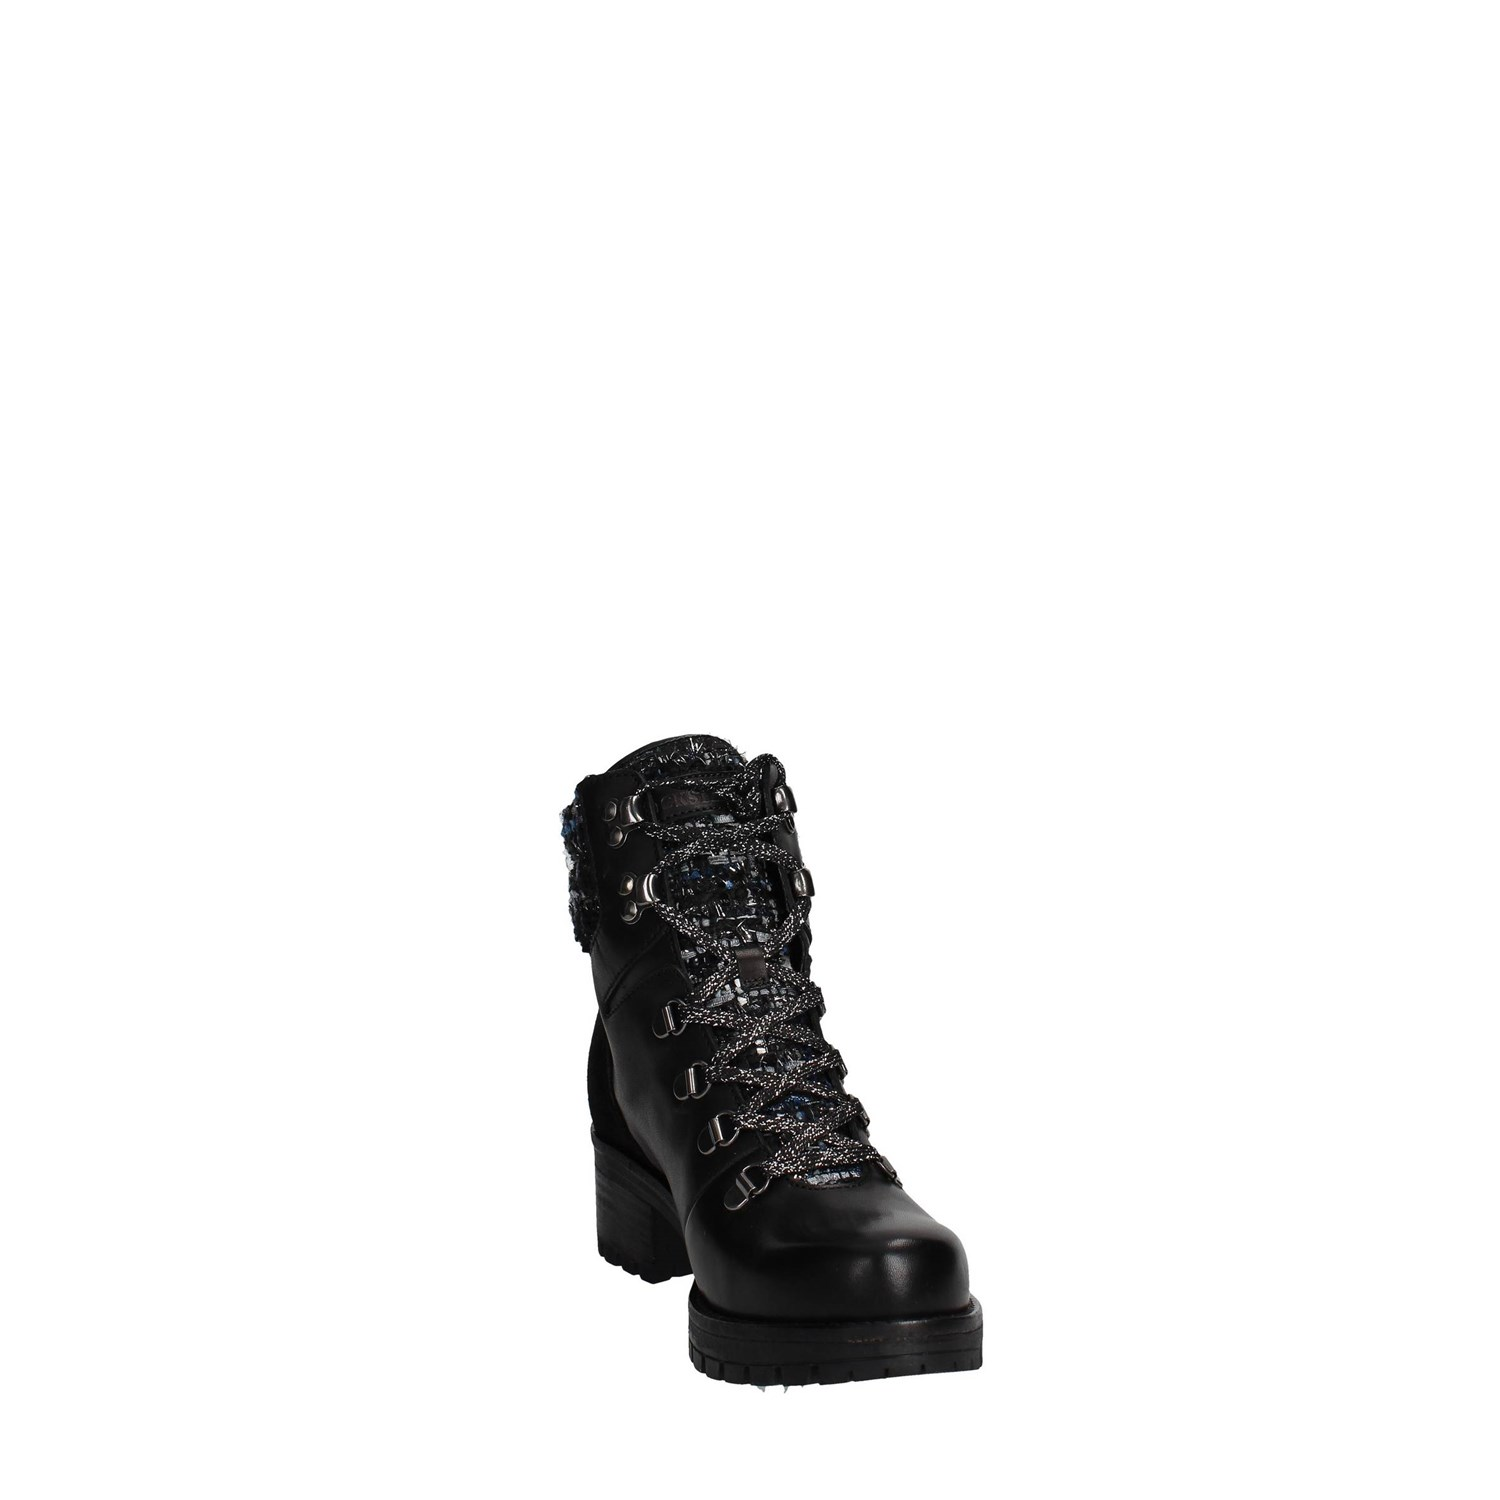 Docksteps DSE103163 DSE103163 DSE103163 negro Anfibio mujer Autunno Inverno 784681